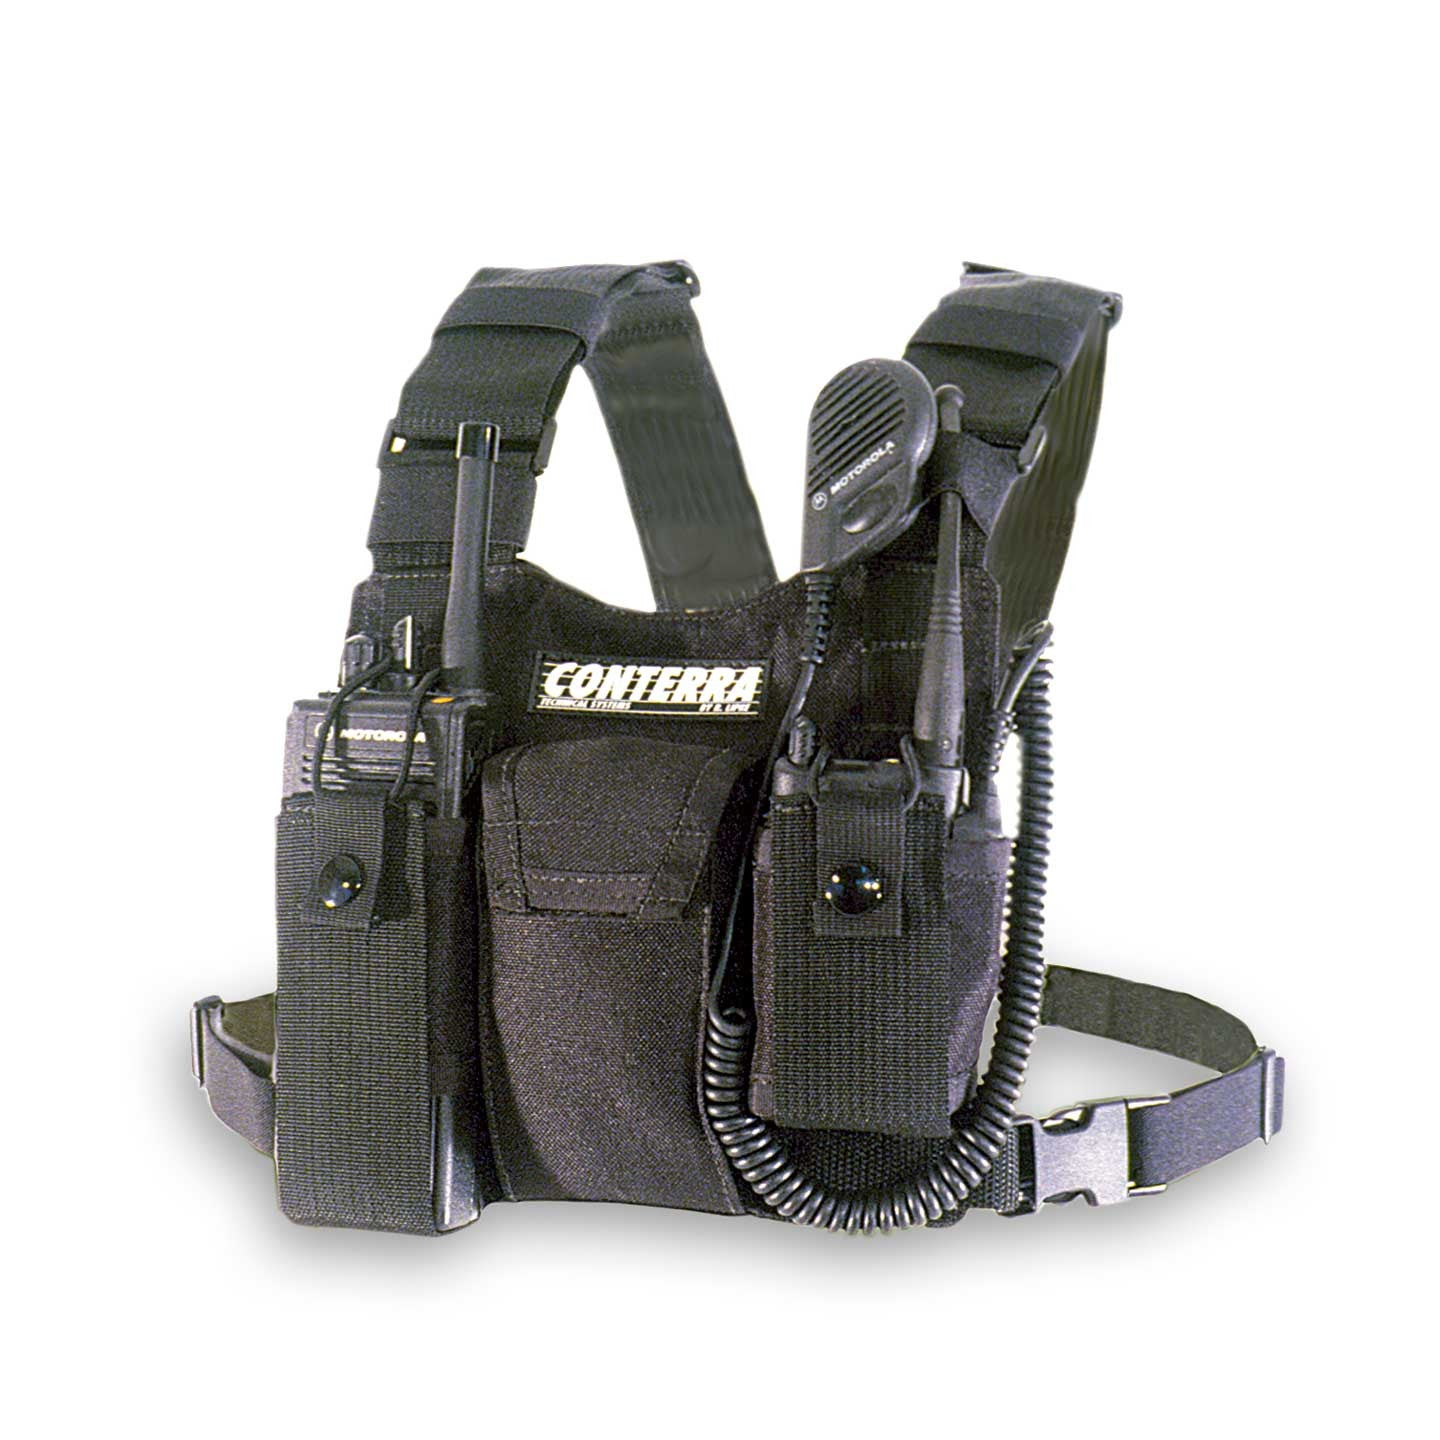 doubleradioharness?v=1424473790 double adjusta pro radio chest harness conterra inc radio harness at alyssarenee.co